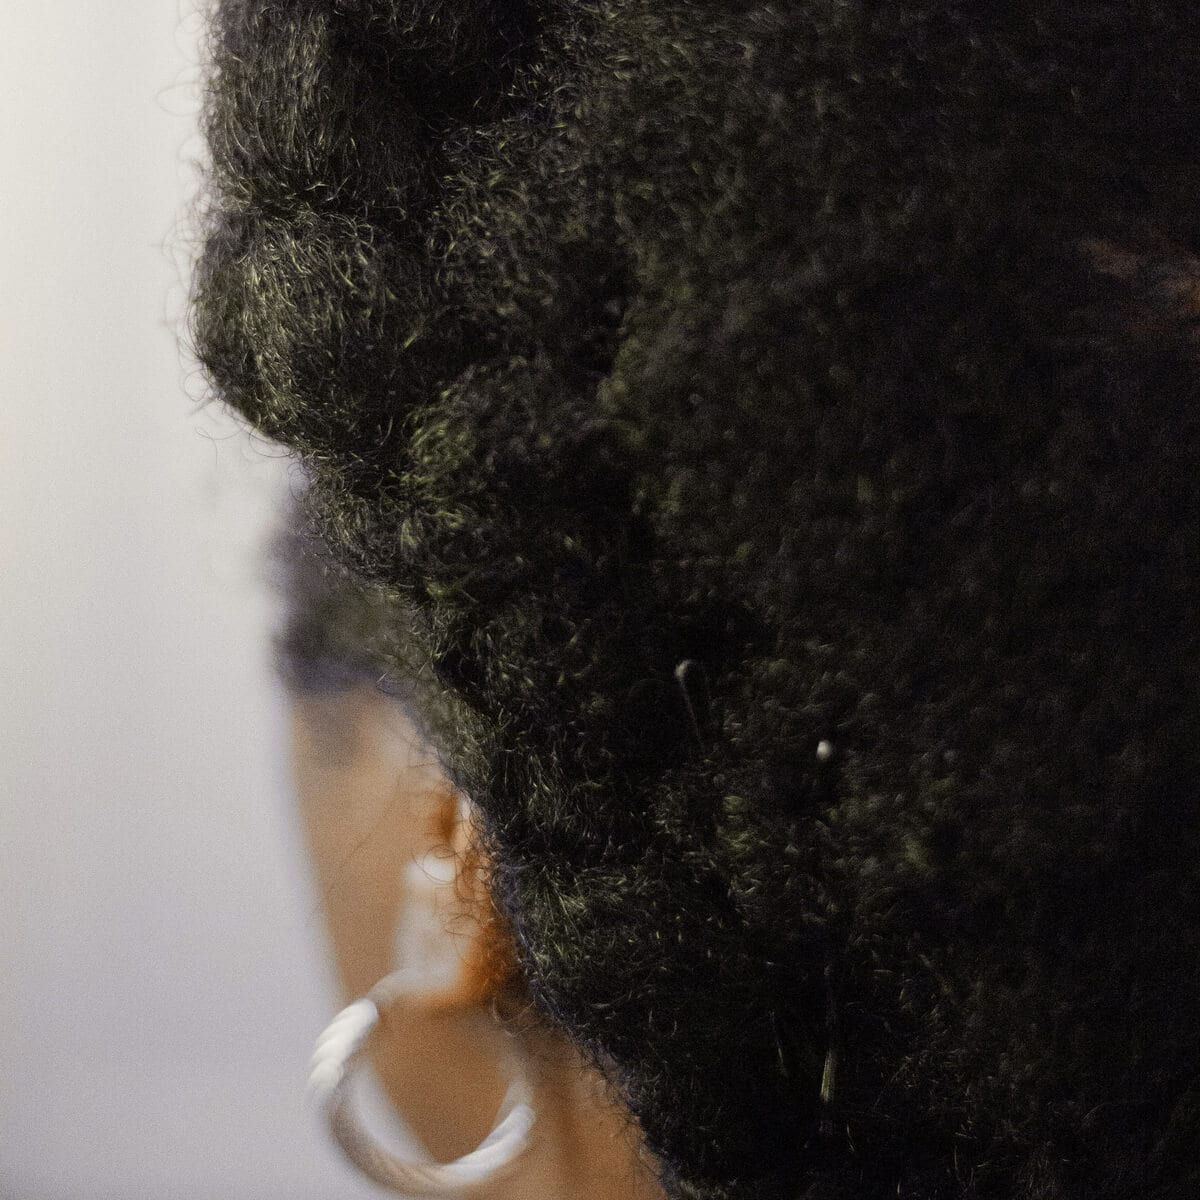 black woman with black hair and an earring